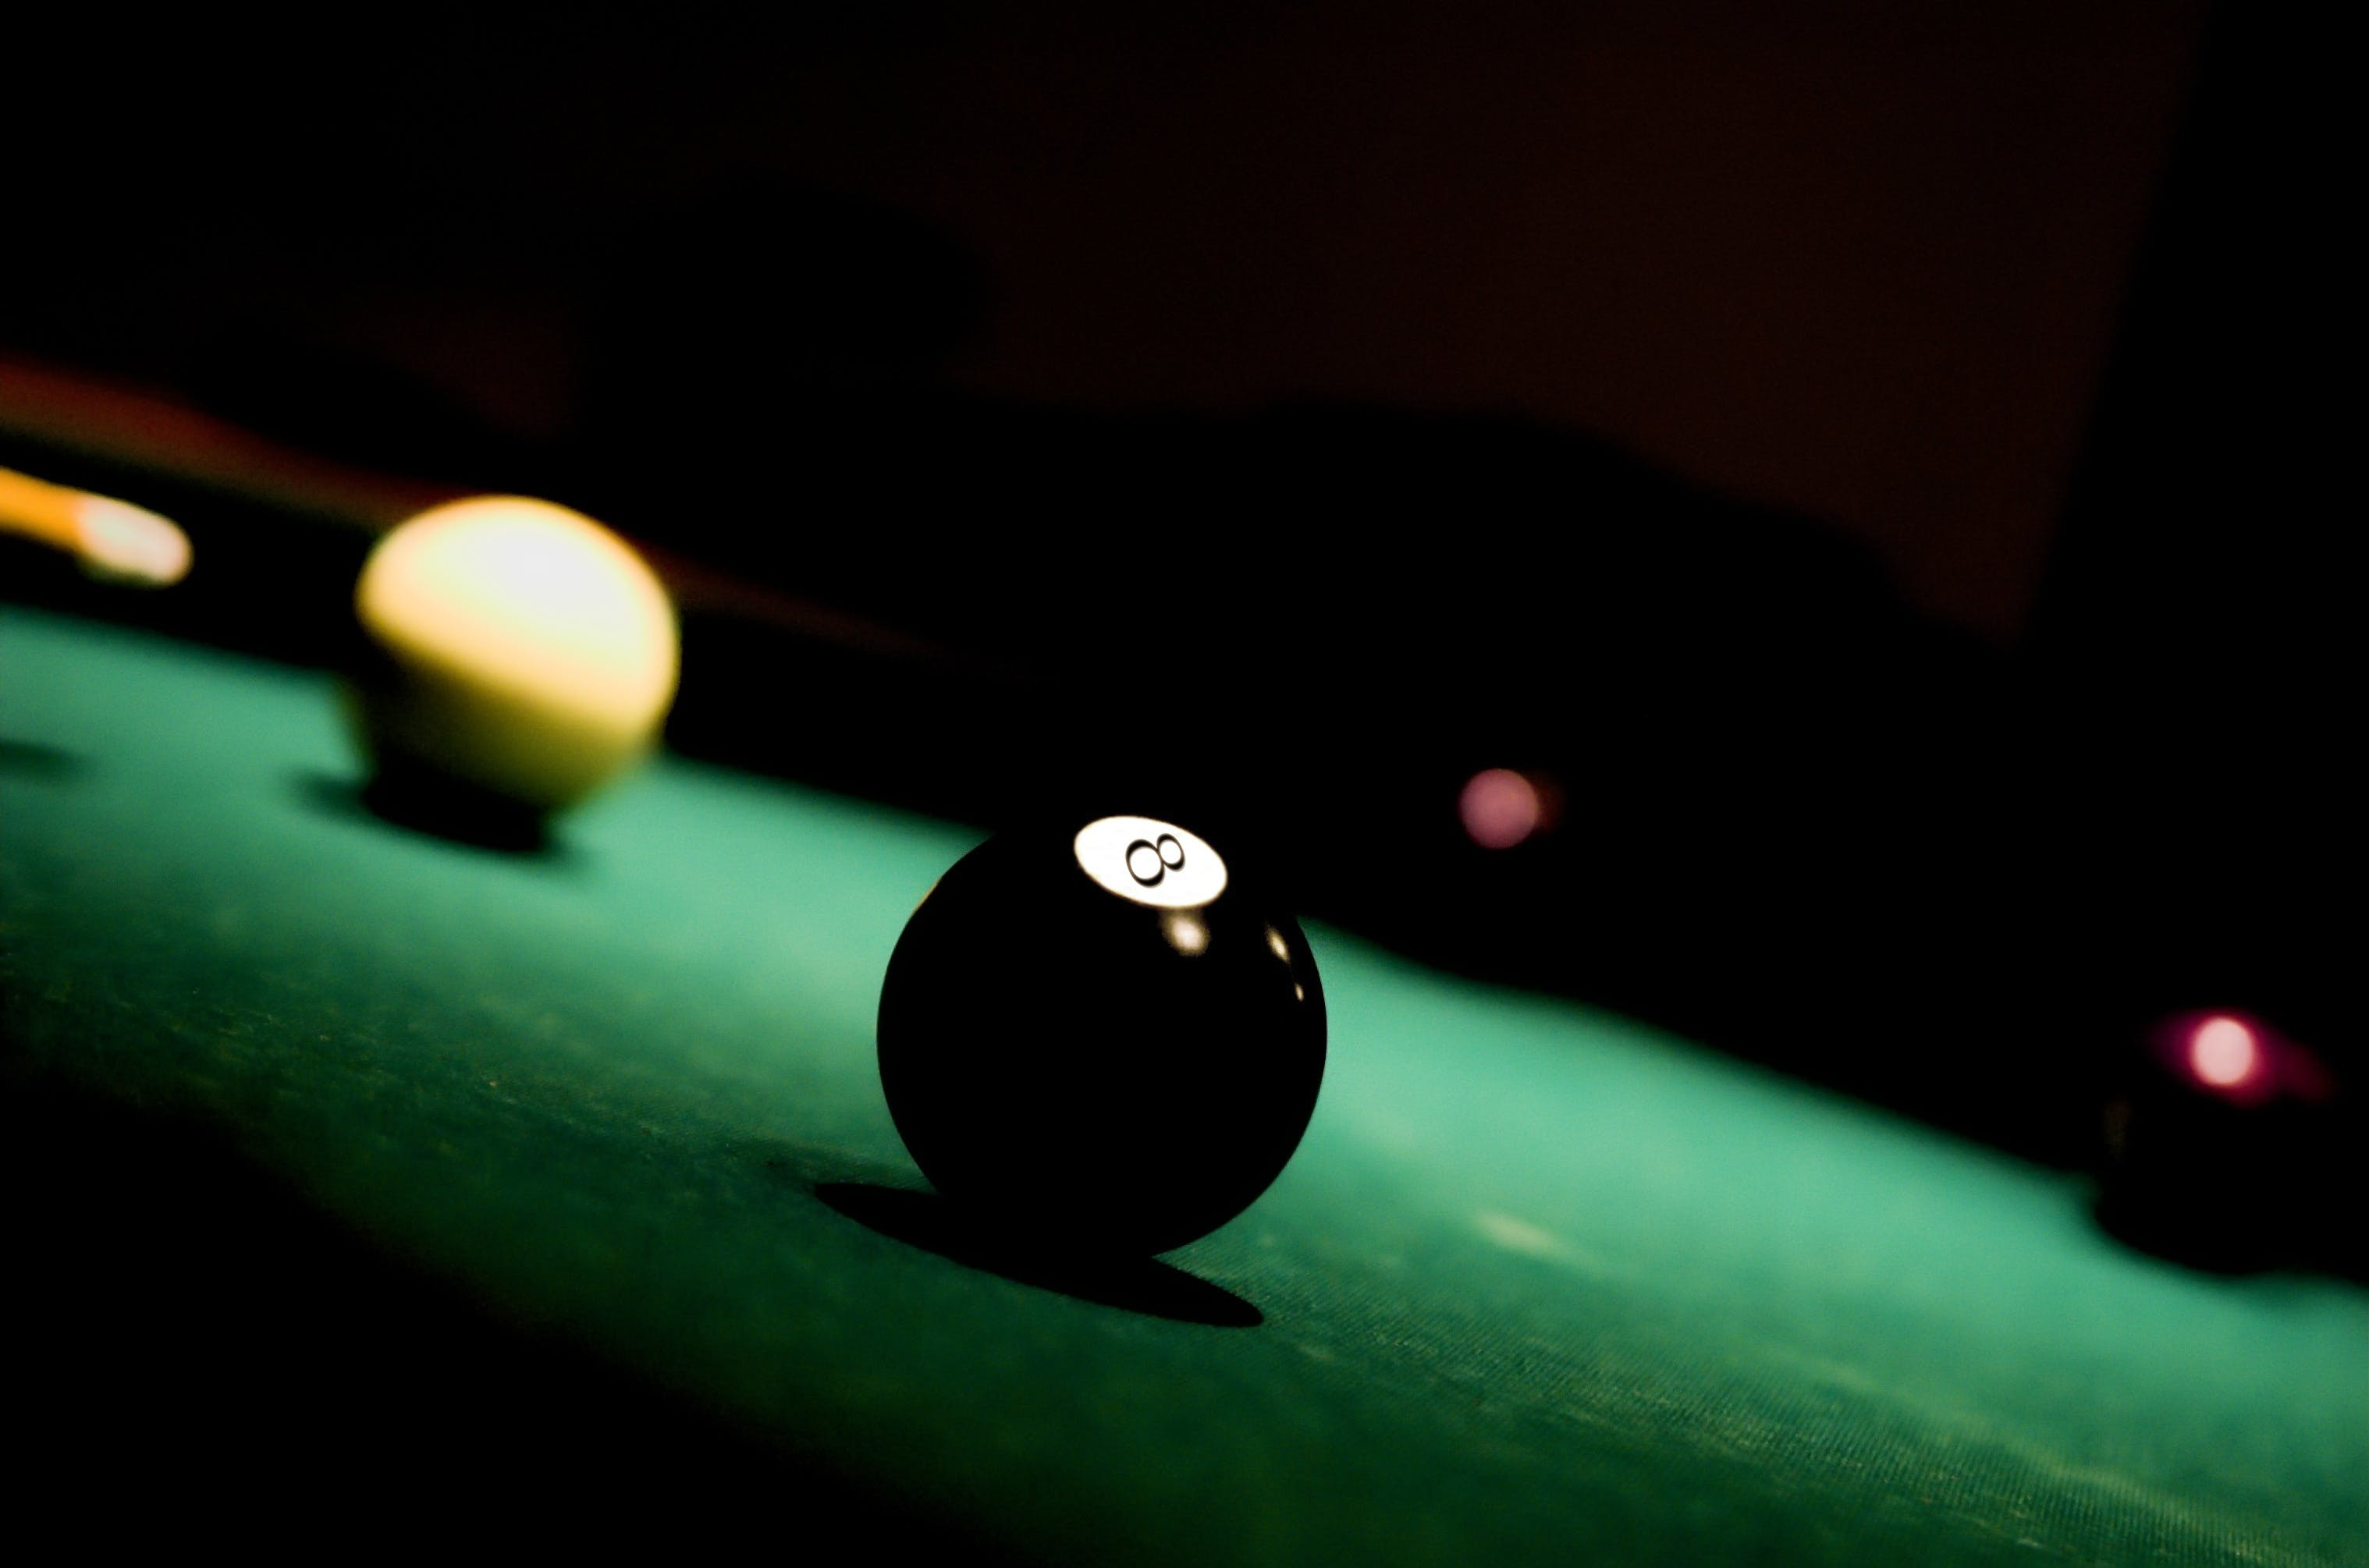 Free stock photo of table, sport, ball, black